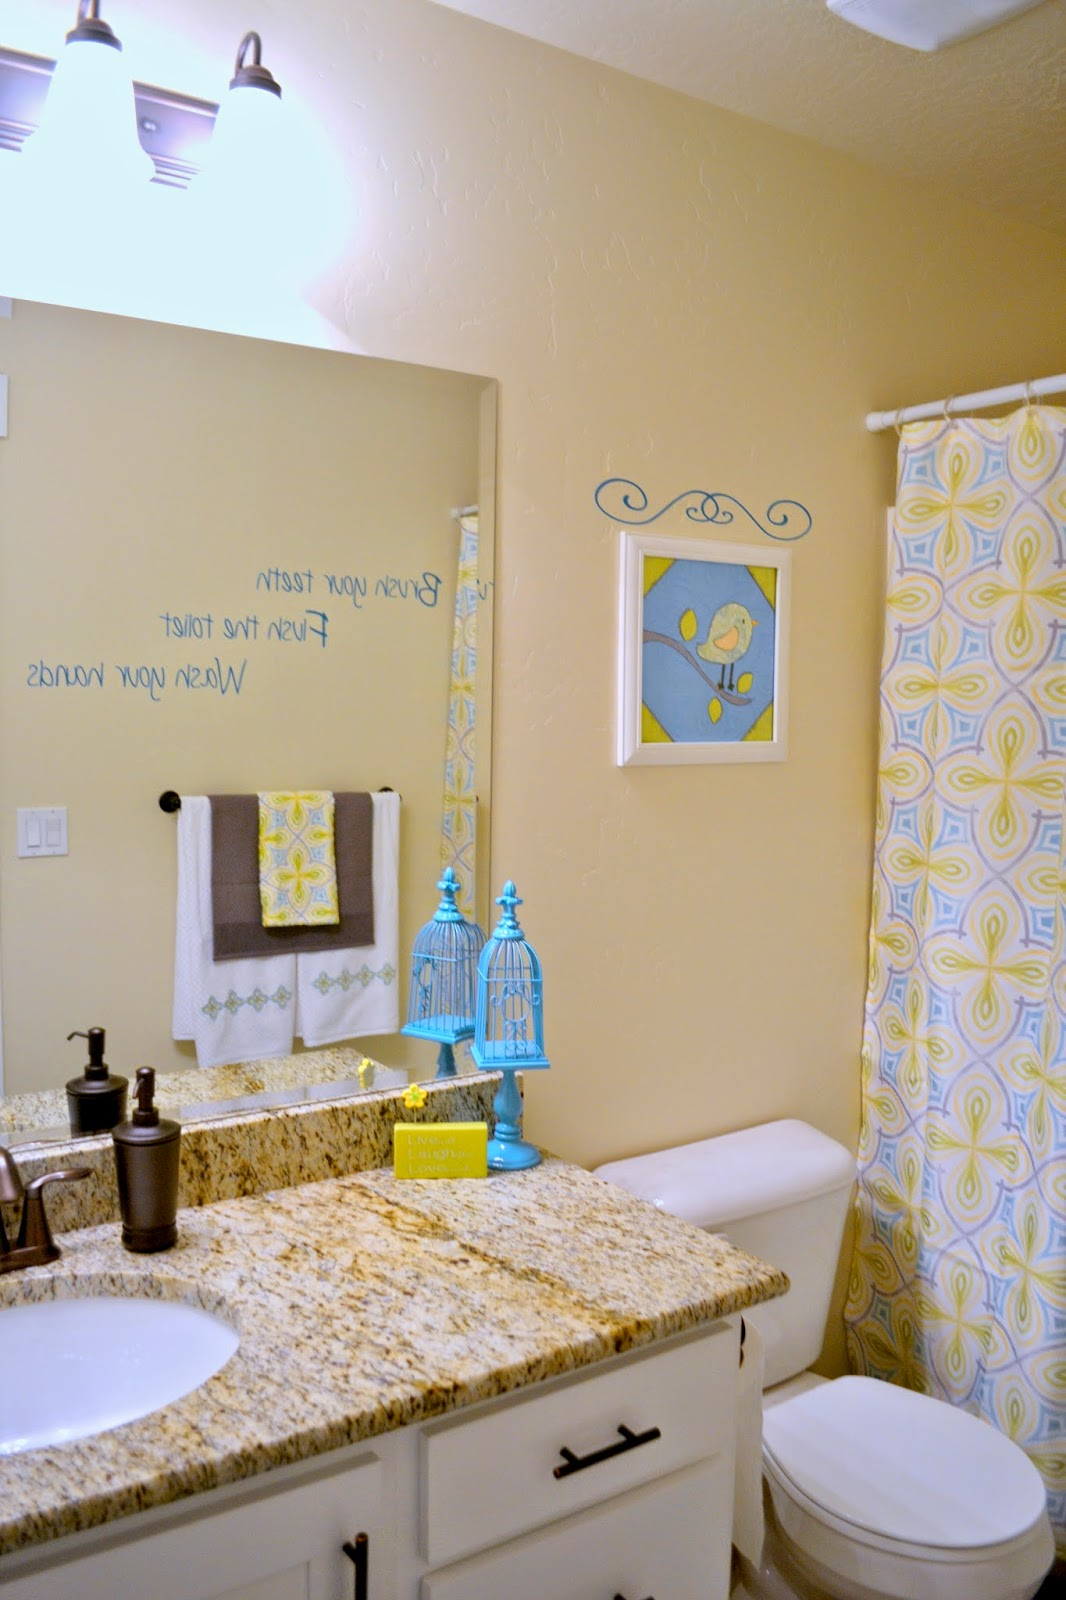 Make it scrappin diy bathroom decor - 5x7 bathroom remodel pictures ...